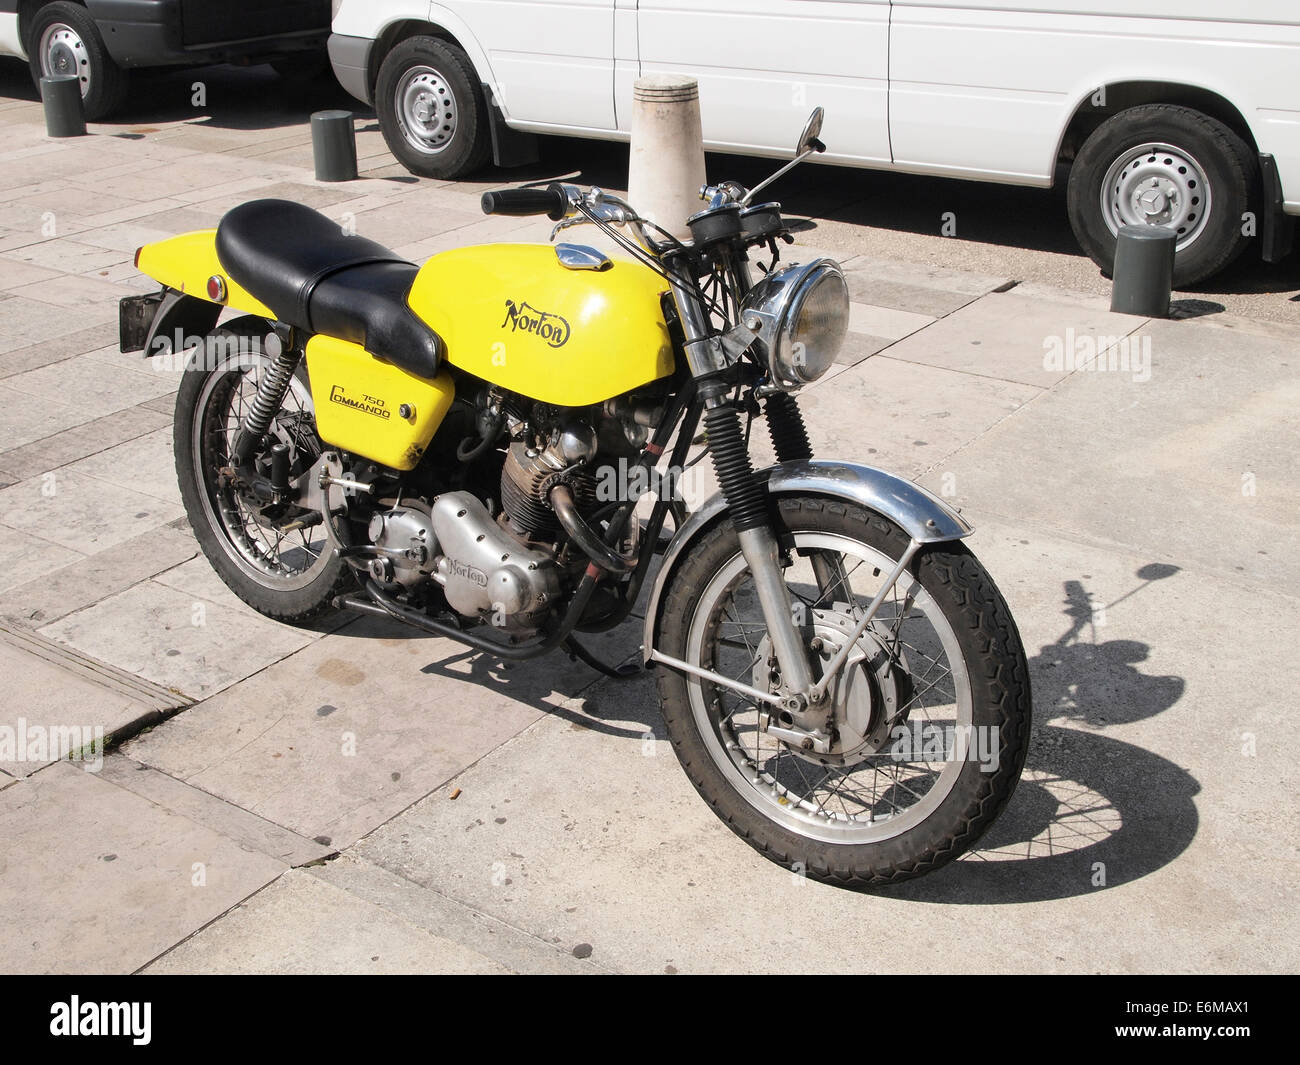 Yellow Vintage Norton Commando 750 Motorcycle Parked On A Square In Lons Le Saunier Jura Region France